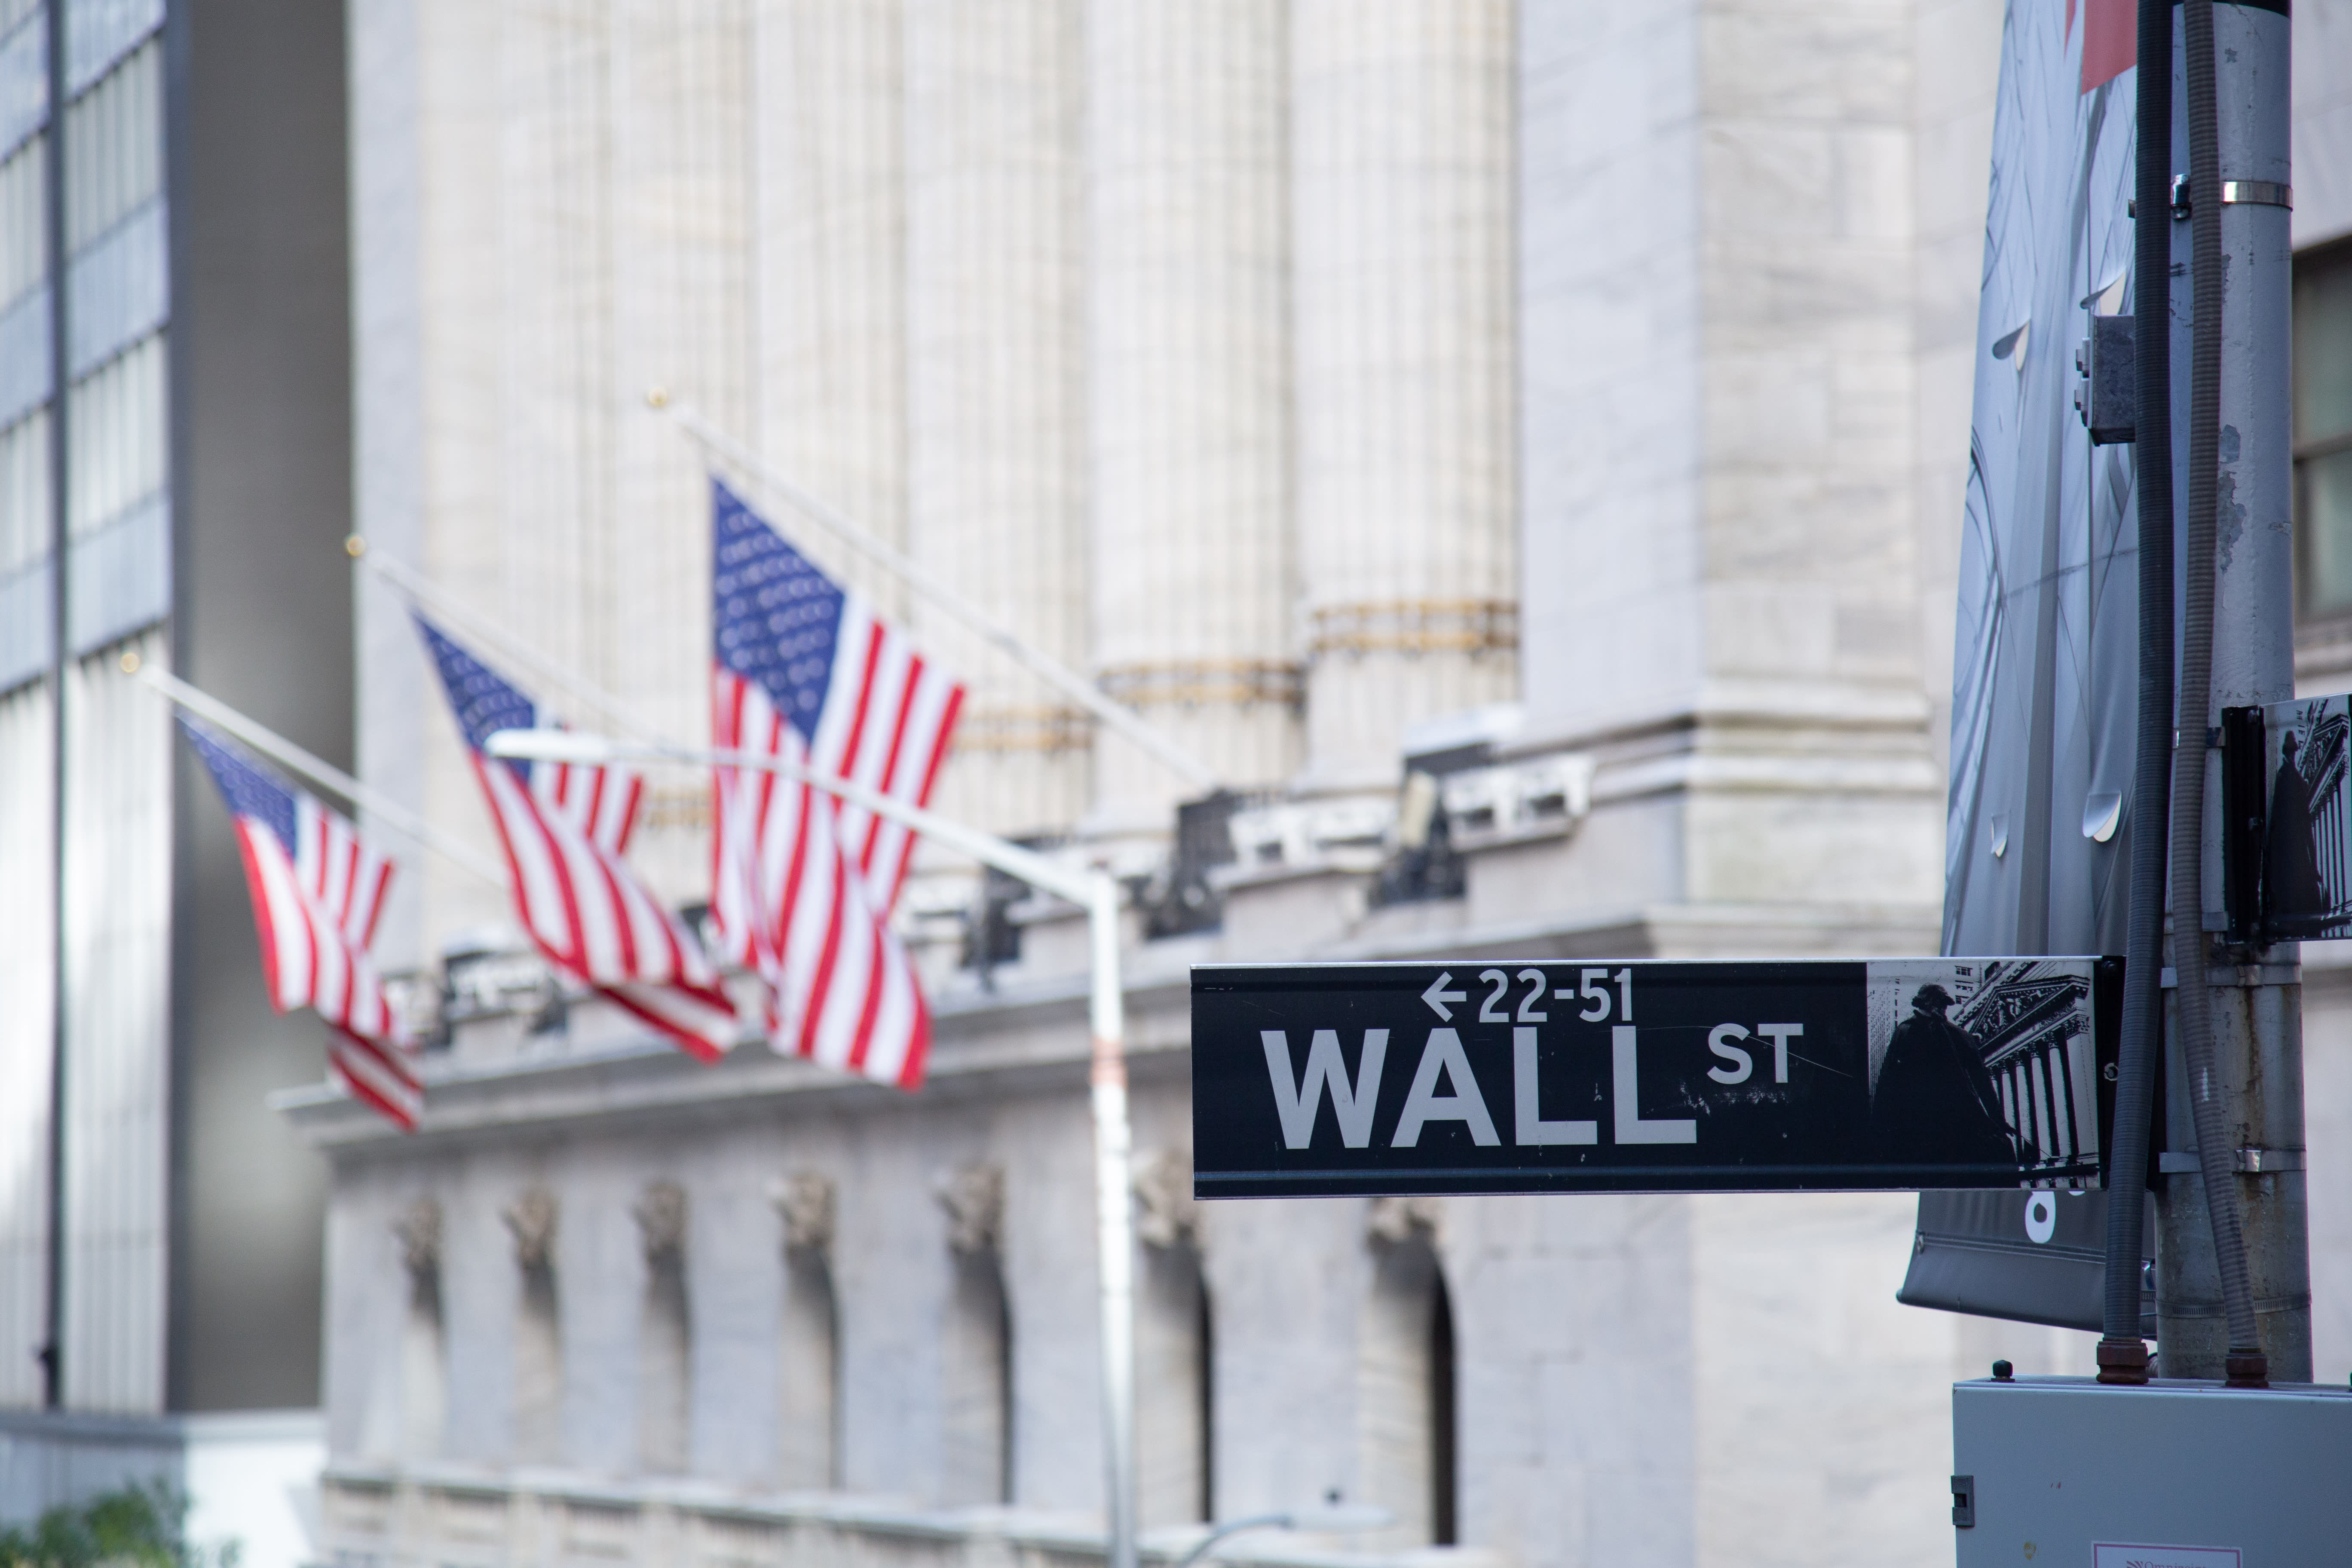 Treasury yields move higher as investors await economic data, auctions